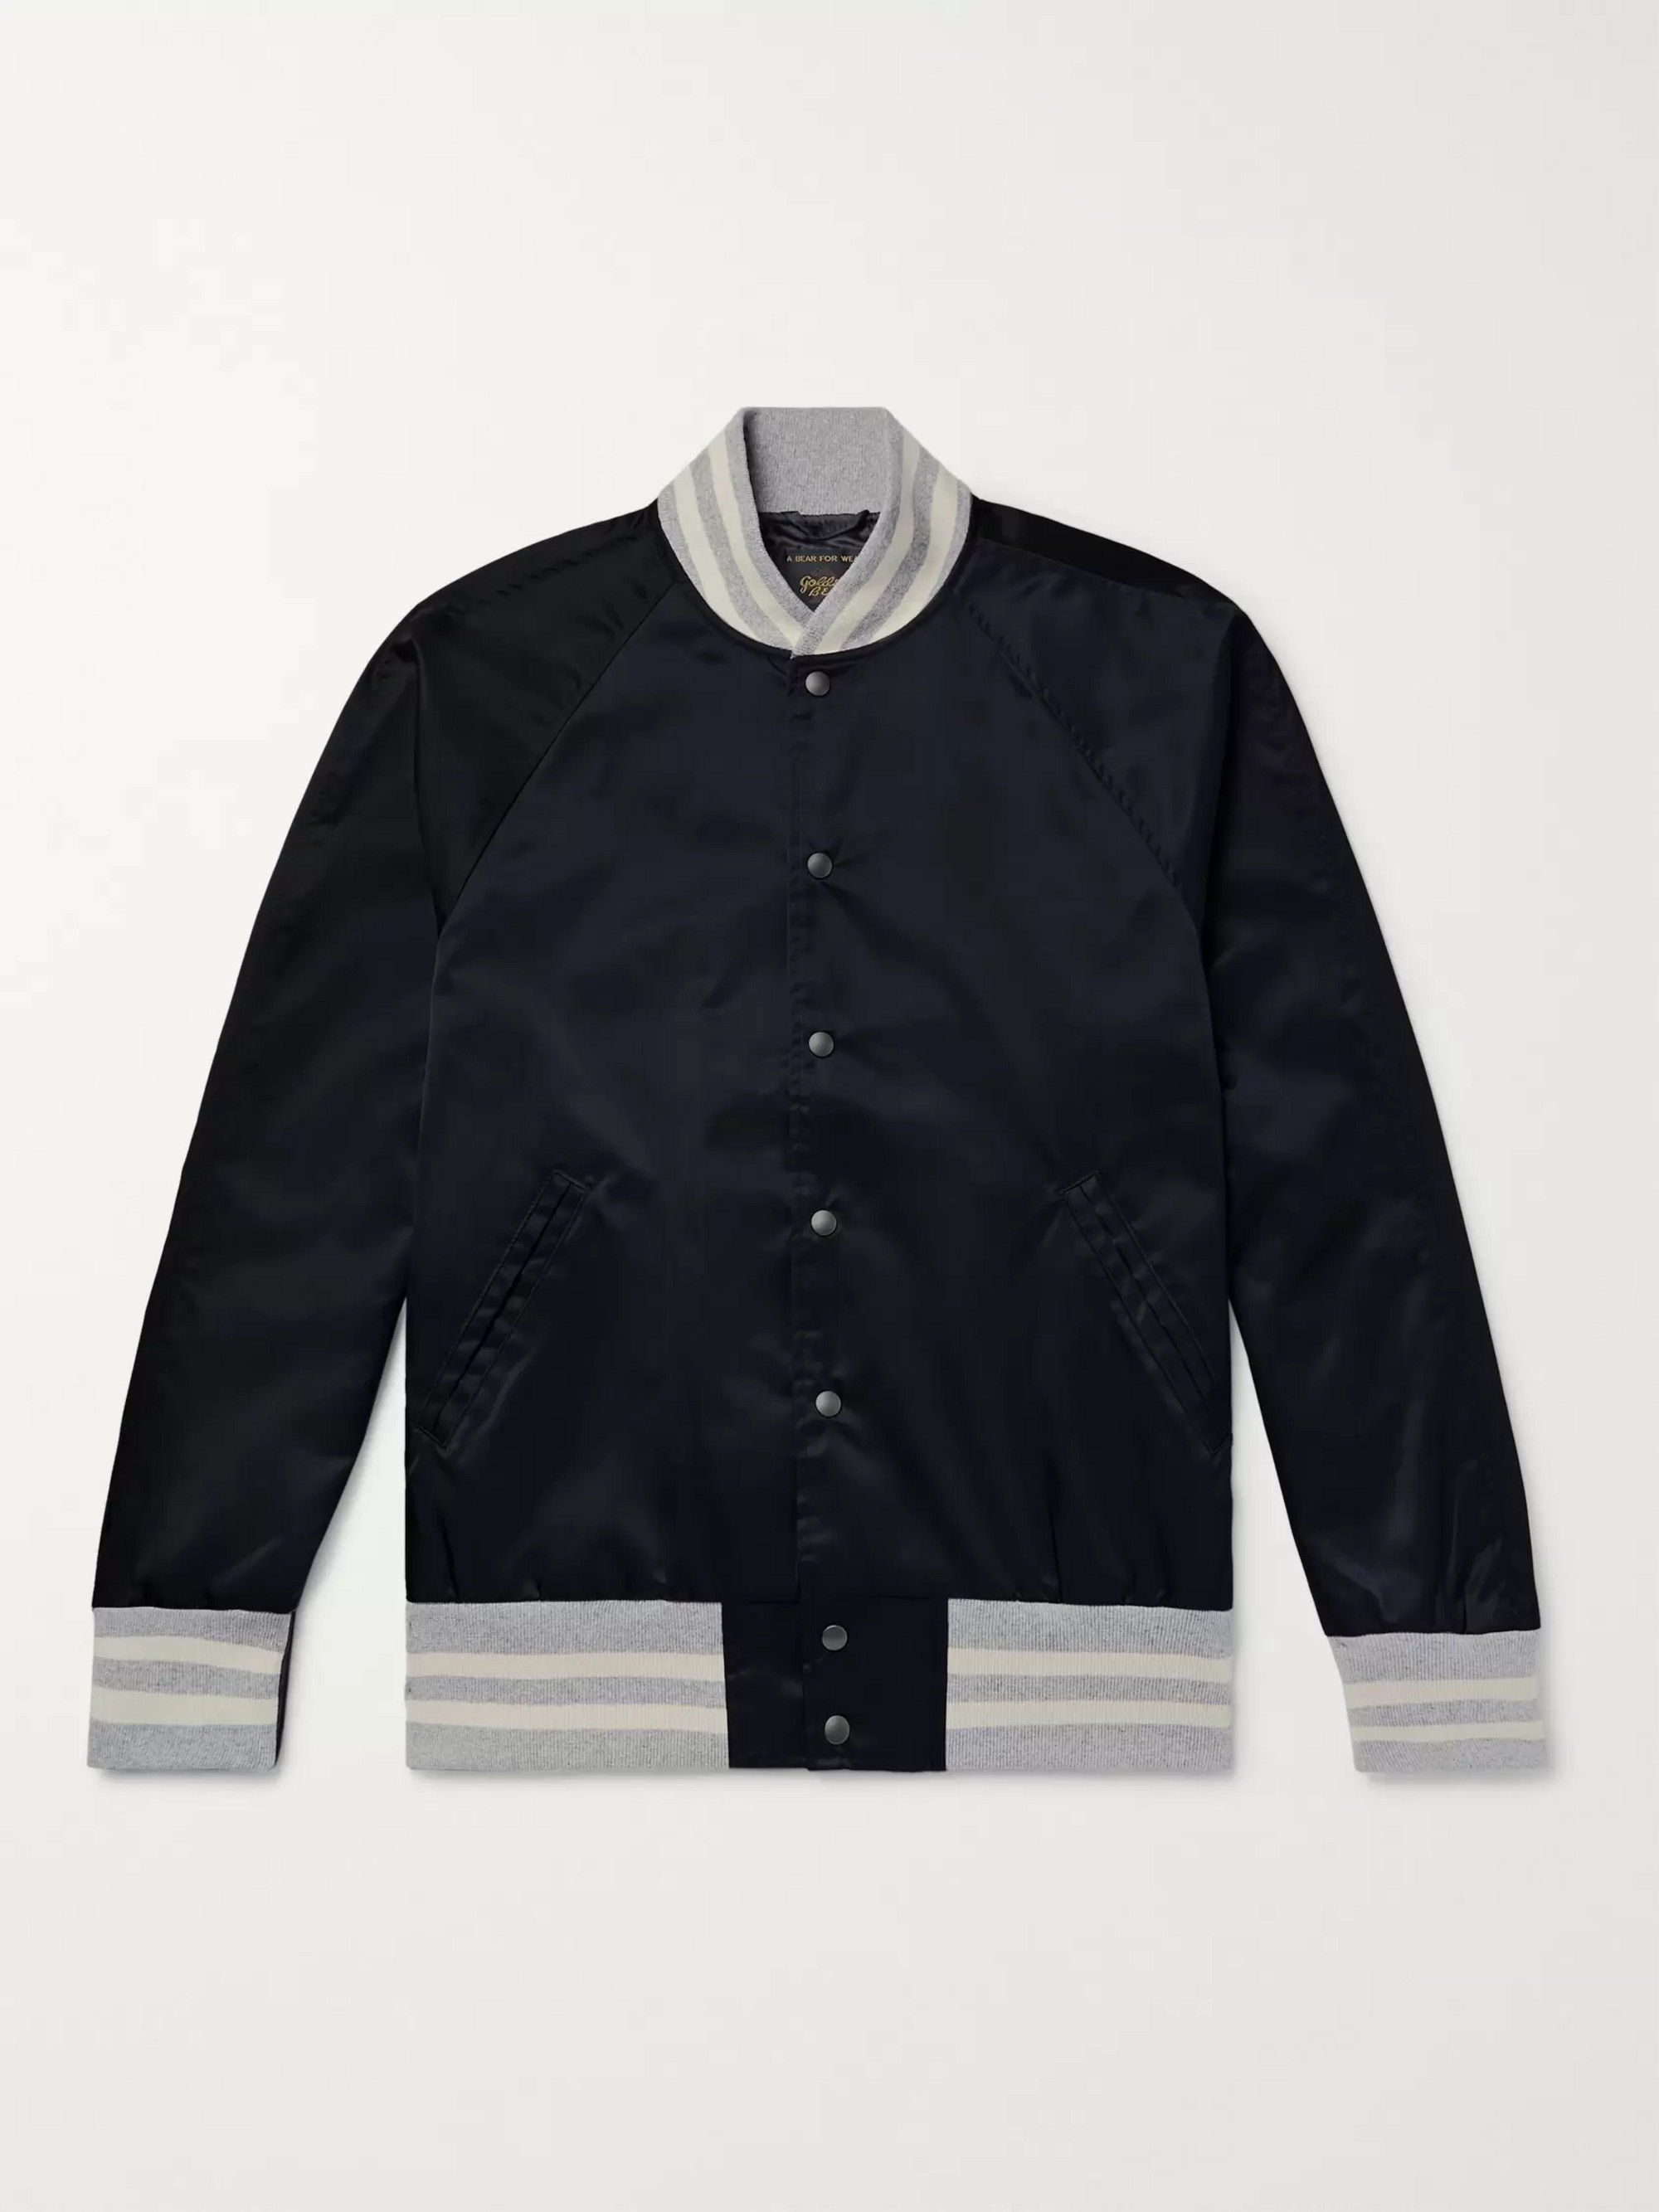 Todd Snyder + Champion + Golden Bear Nylon Bomber Jacket